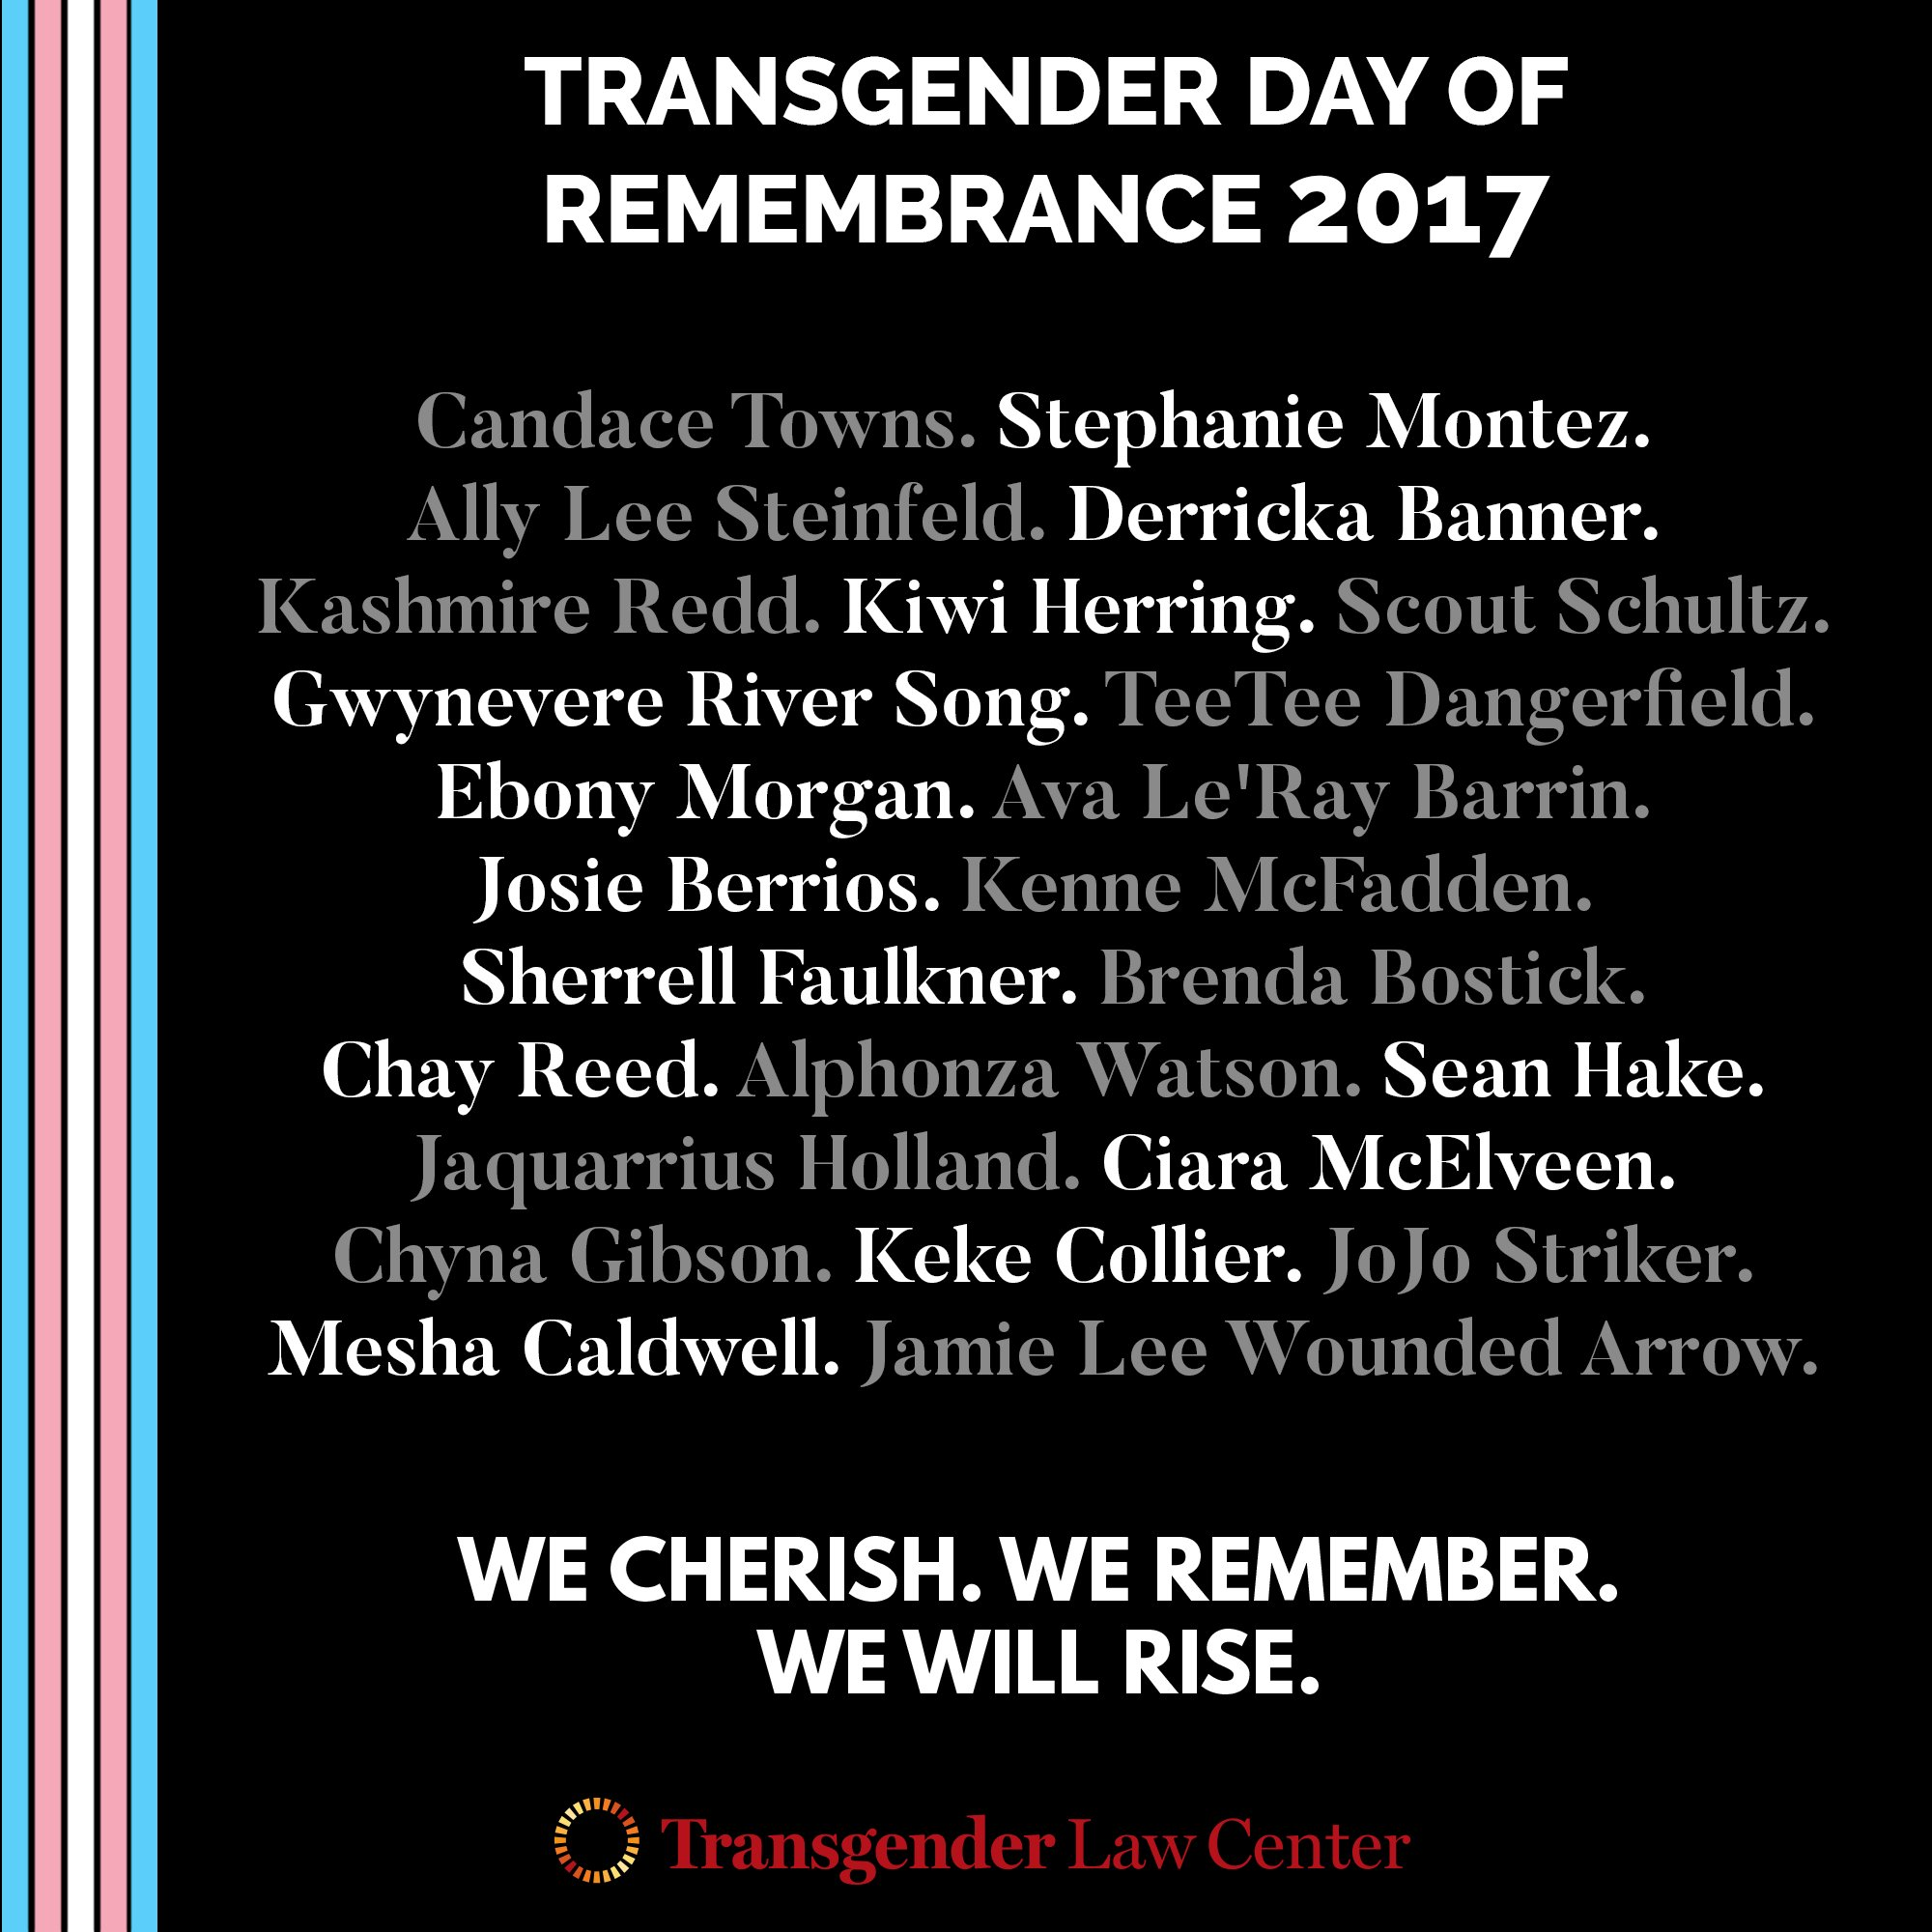 RT @TransLawCenter: We cherish. We remember. We will rise. #TDOR #tdor2017 https://t.co/pHMjxzNzXT